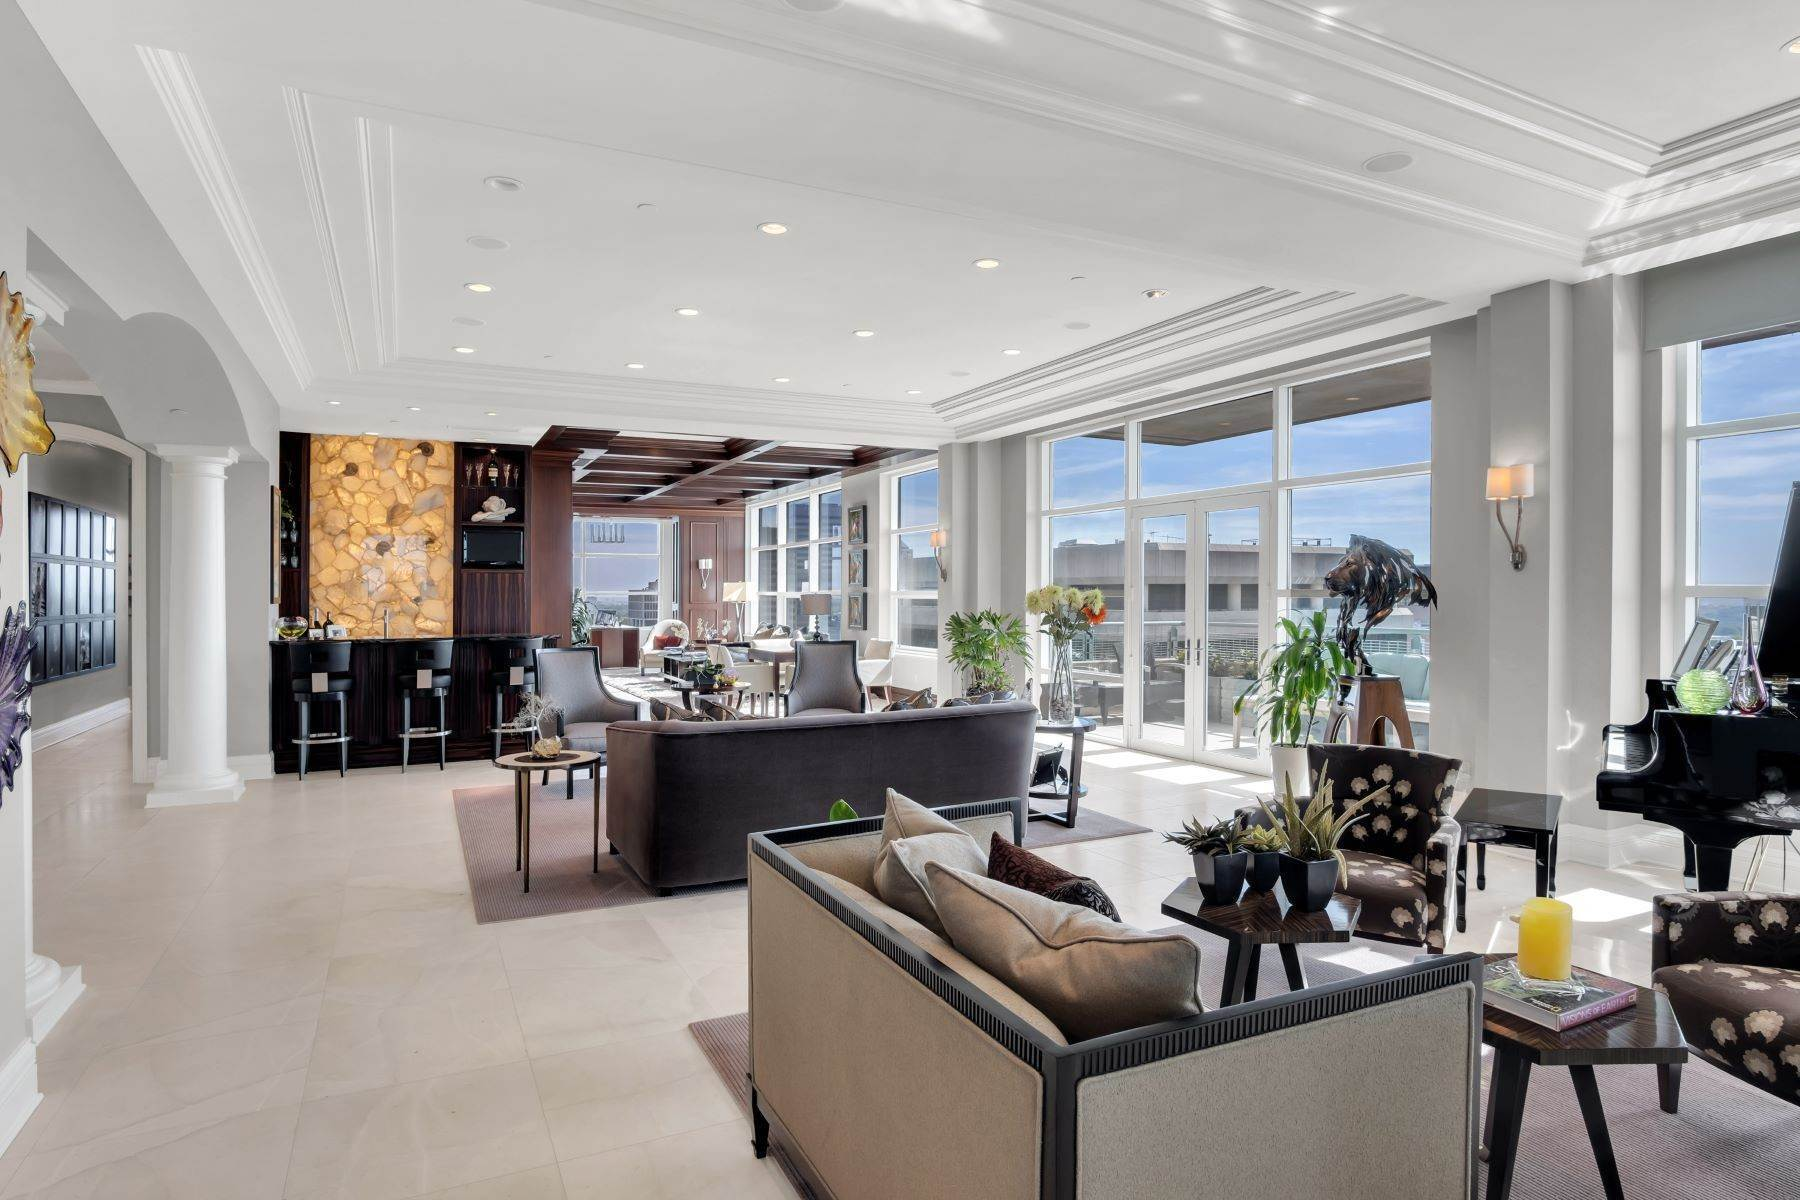 3. Condominiums for Sale at Experience Luxury and Urban Penthouse Living 8025 Maryland Avenue, #15C Clayton, Missouri 63105 United States